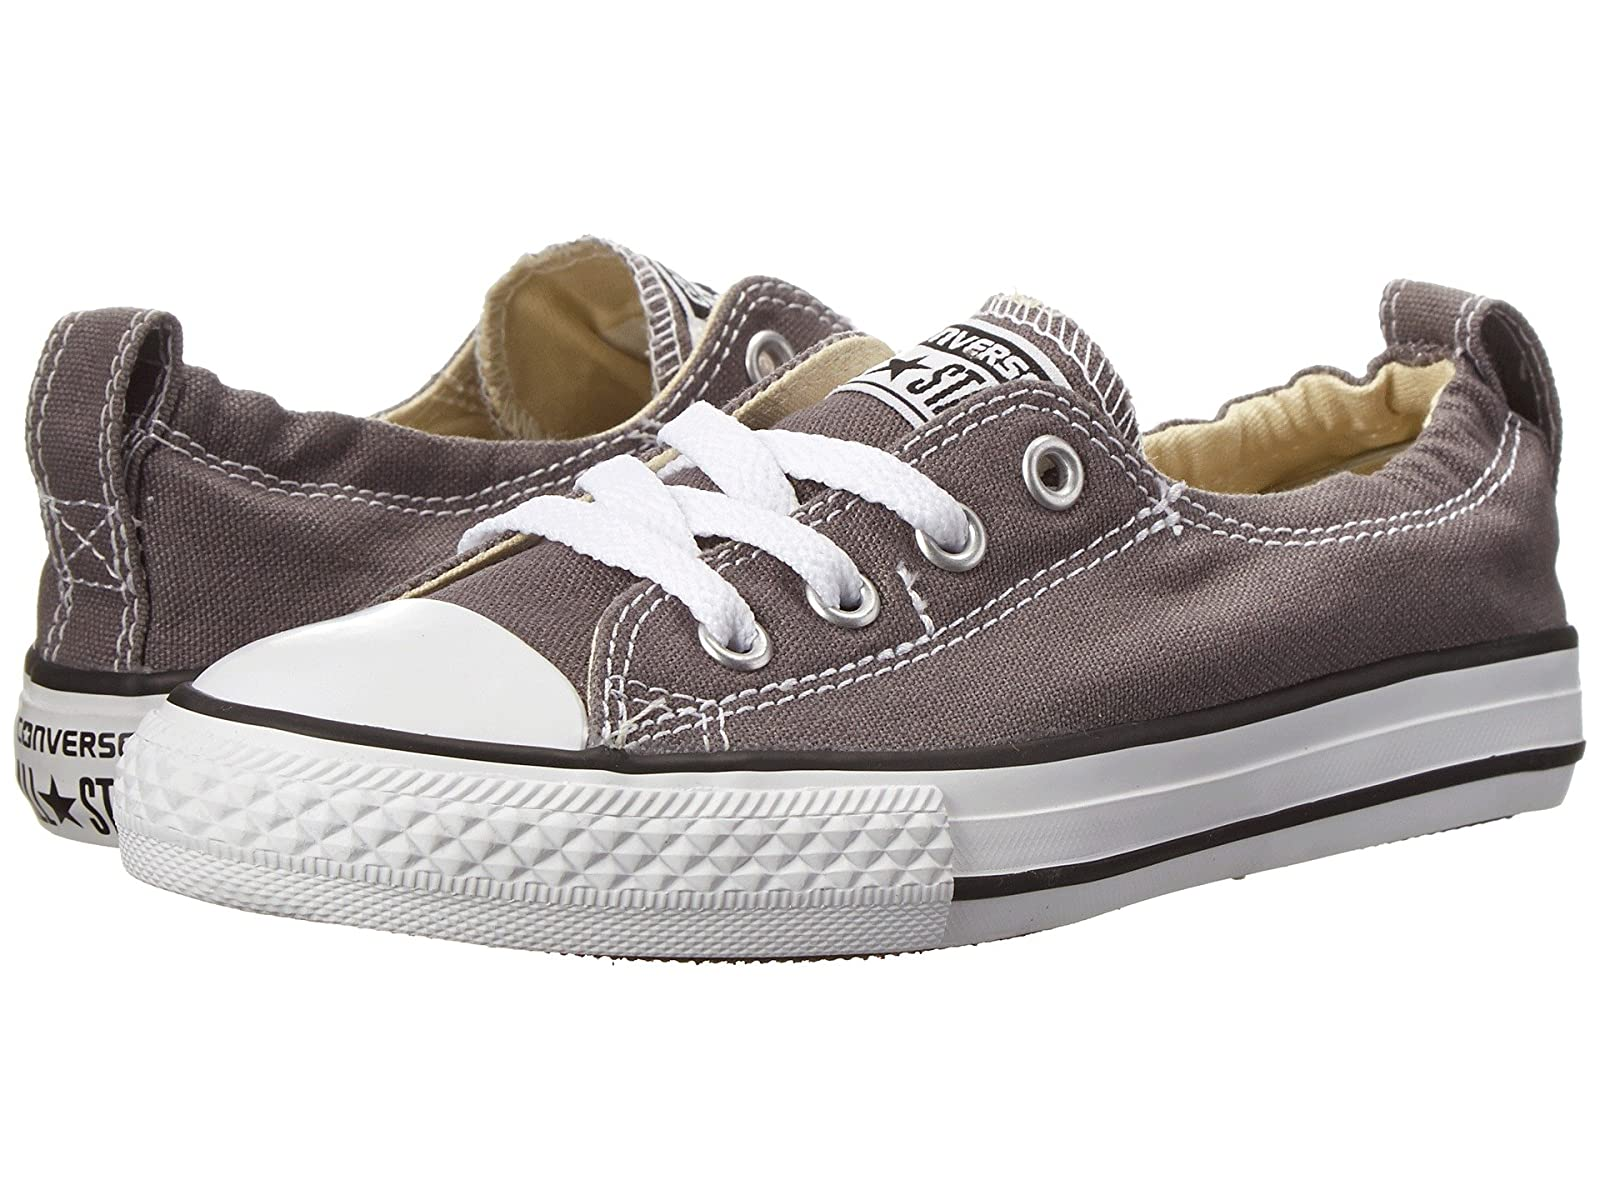 Converse Kids Chuck Taylor® All Star® Shoreline Slip (Little Kid/Big Kid)Cheap and distinctive eye-catching shoes